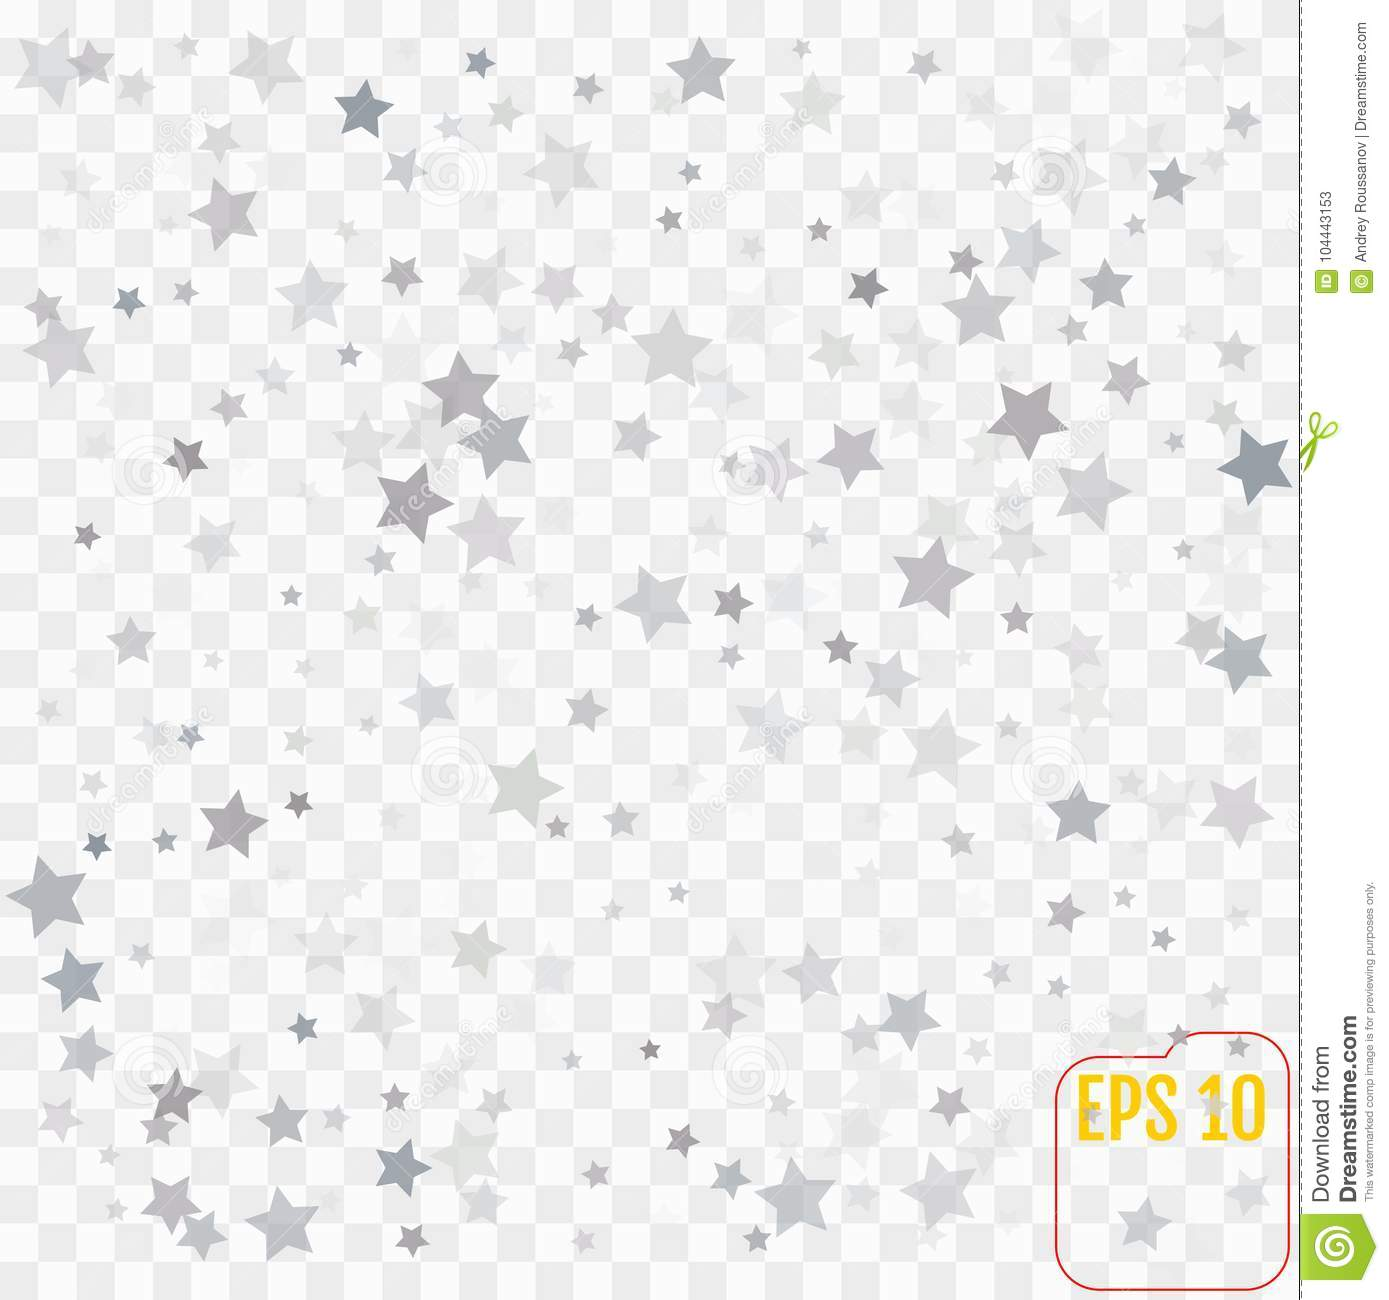 Abstract pattern of random falling silver stars on transparent